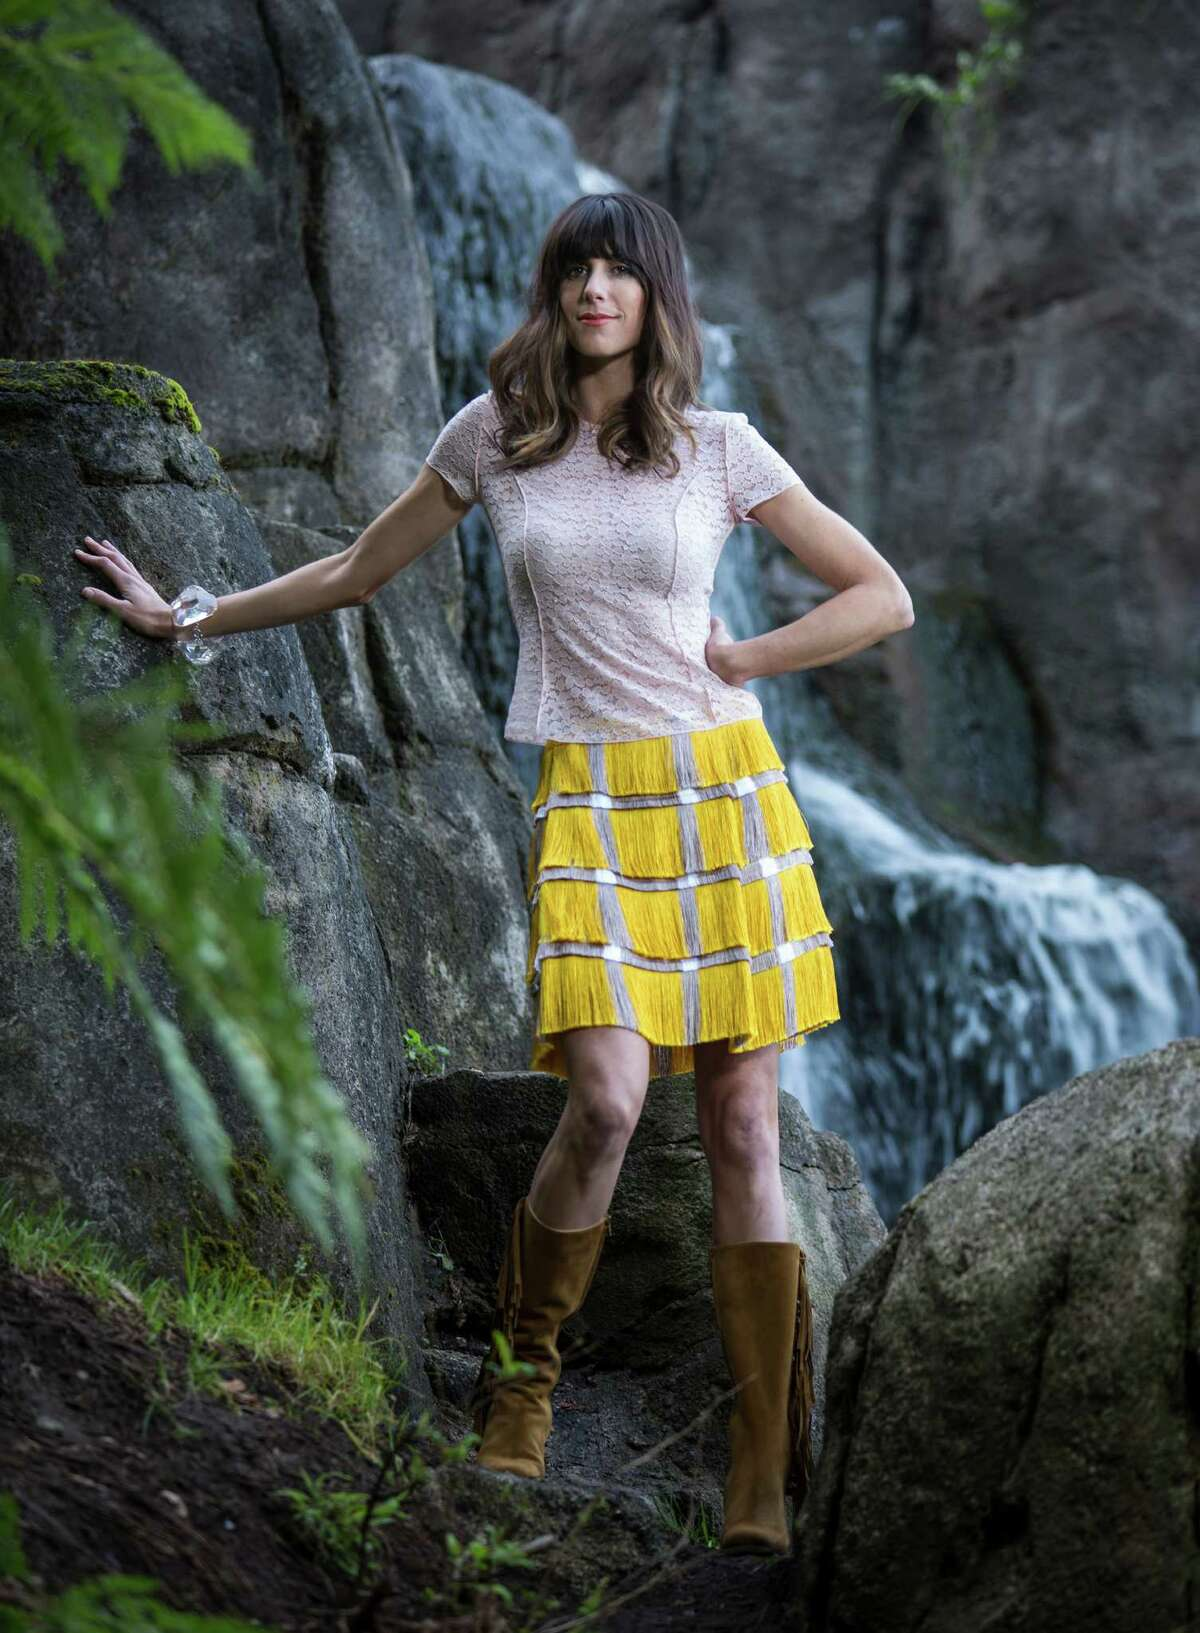 Back to nature: Nicki Bluhm wears a Nina Ricci pink lace top, Nina Ricci, $990, Barneys; Marco de Vincenzo fringe skirt, $1,450, Neiman Marcus; Saint Laurent fringe-trimmed suede knee-high boots, $1,695, Saks Fifth Avenue. Styling: Dorsey Blunt; hair & makeup: Katie Nash; styling assistant: Shayla Dopp; photo assistants: Stephen Lam, Amy Osborne, Terray Sylvester